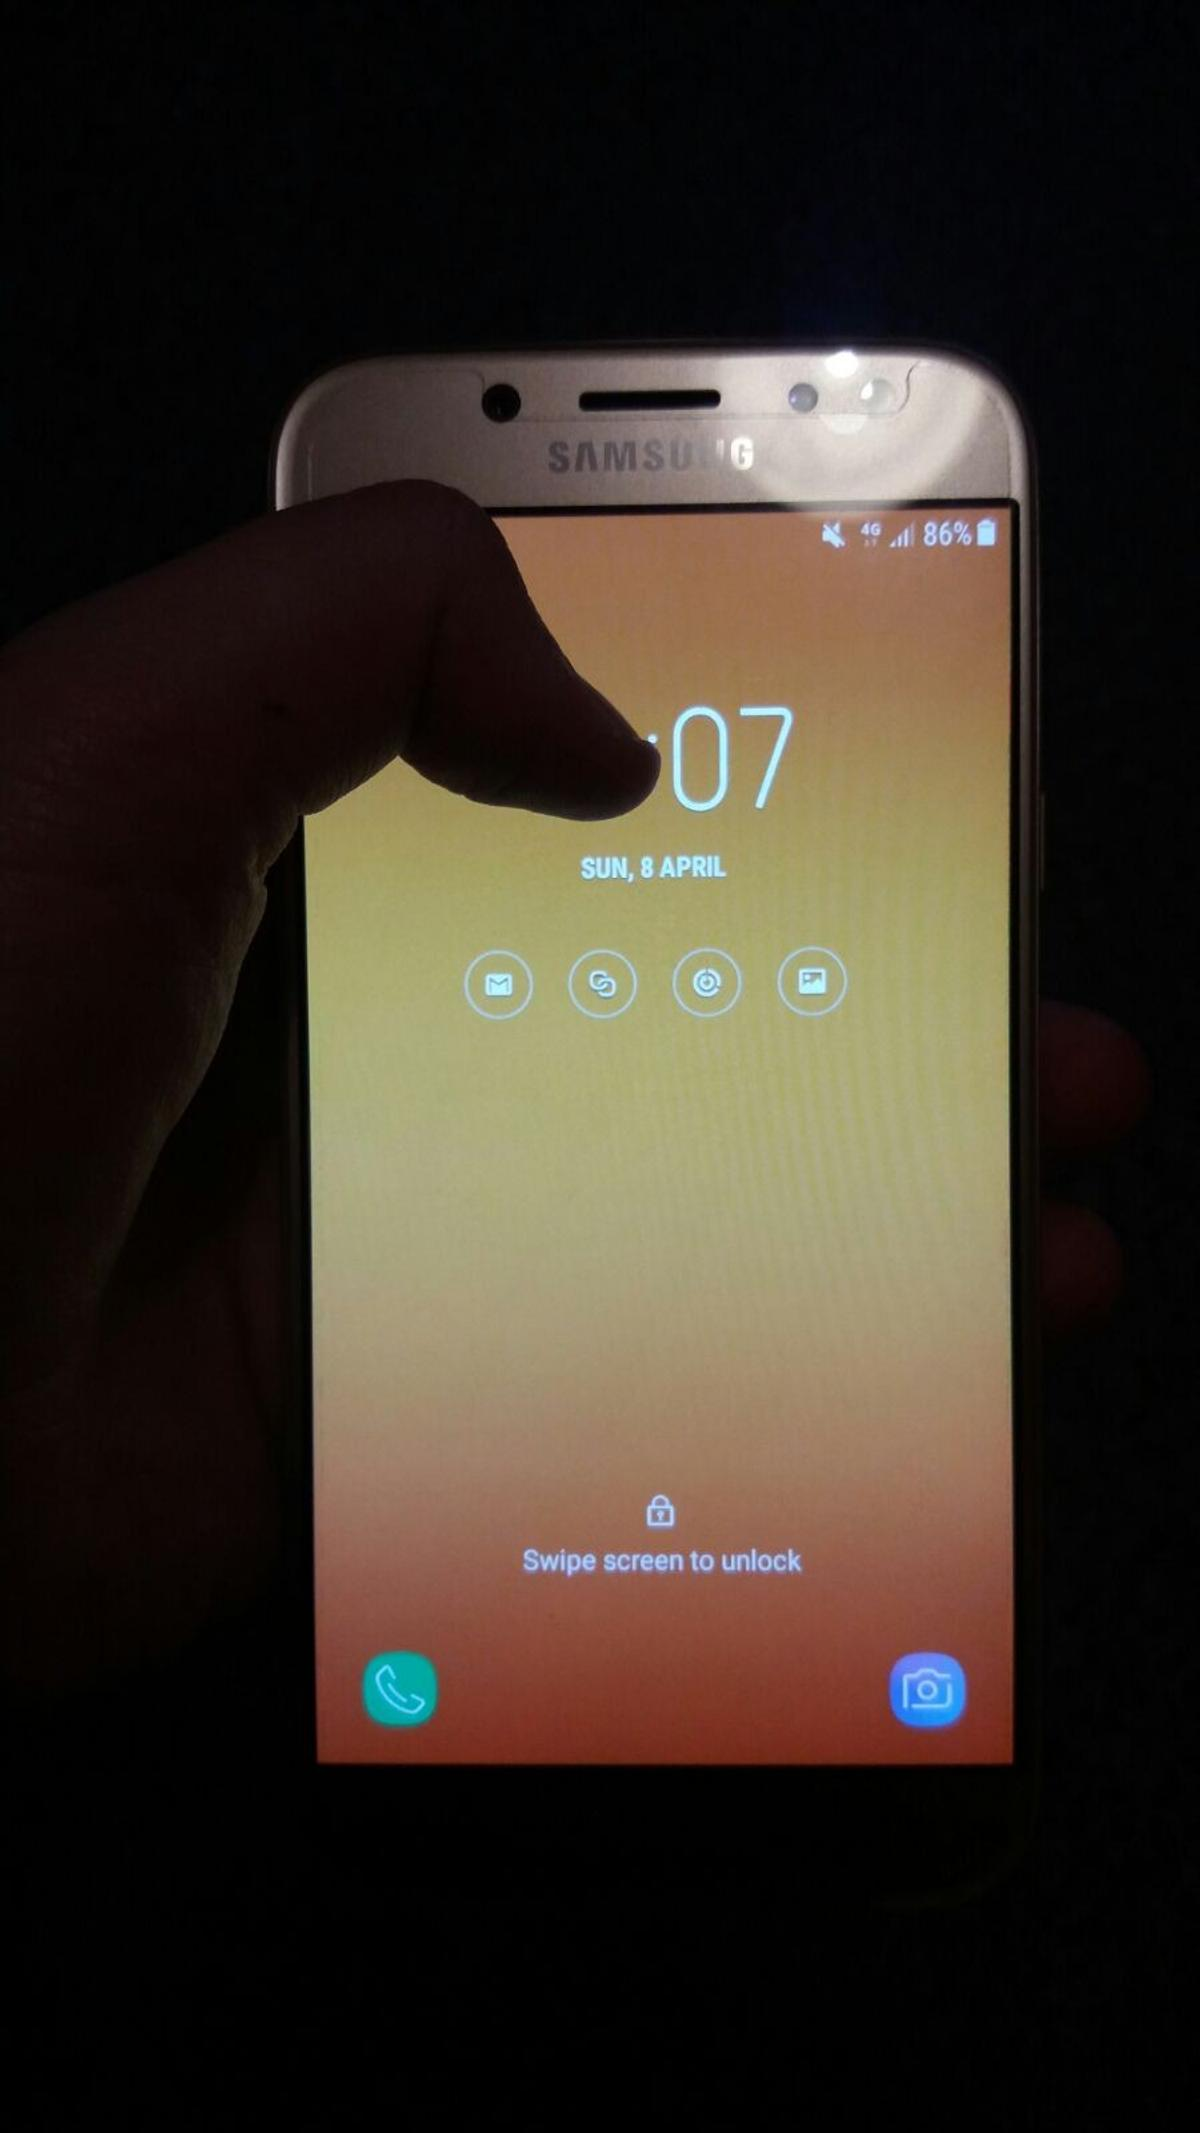 Samsung galaxy j5 2017 unlocked in HU2 Hull for £110 00 for sale